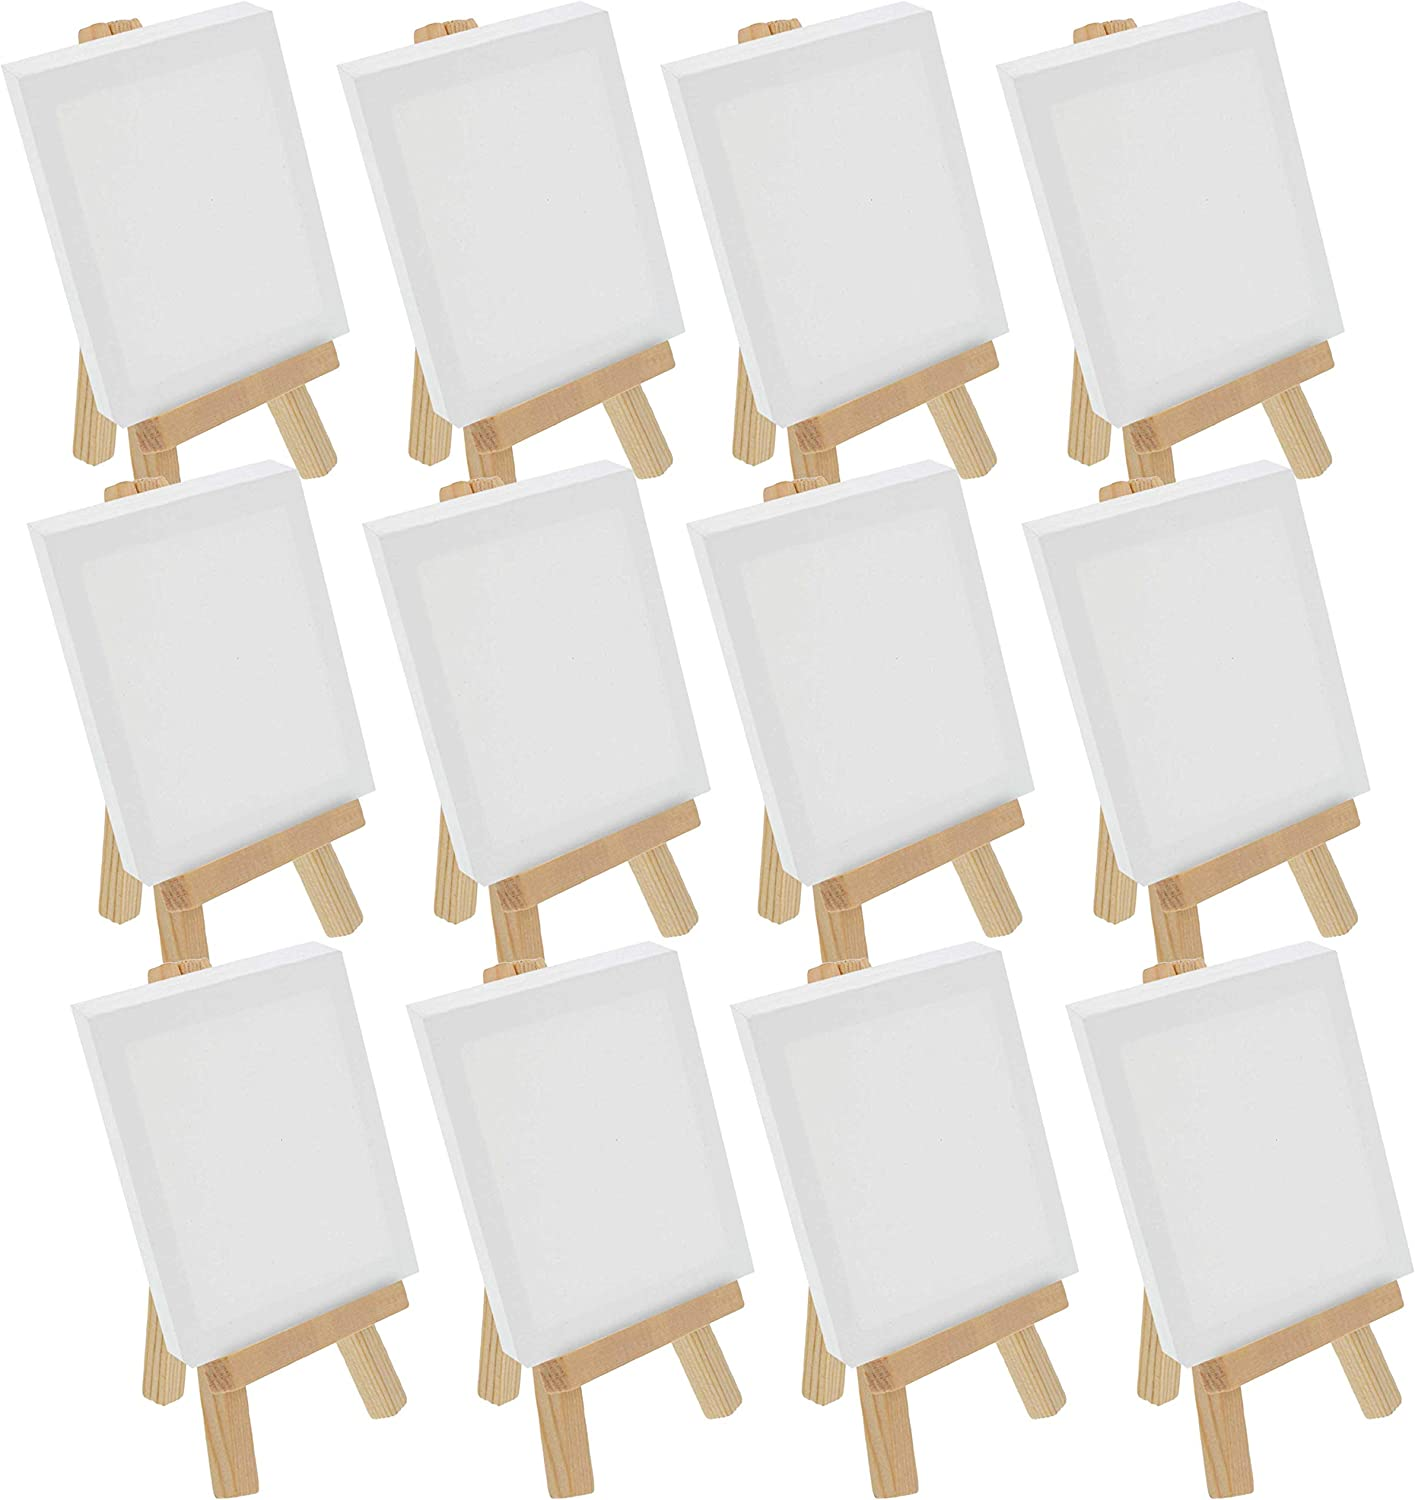 Pack of 24 Art Supply Mini 5 inch Natural Wood Craft Business Card Photo Display Easel U.S